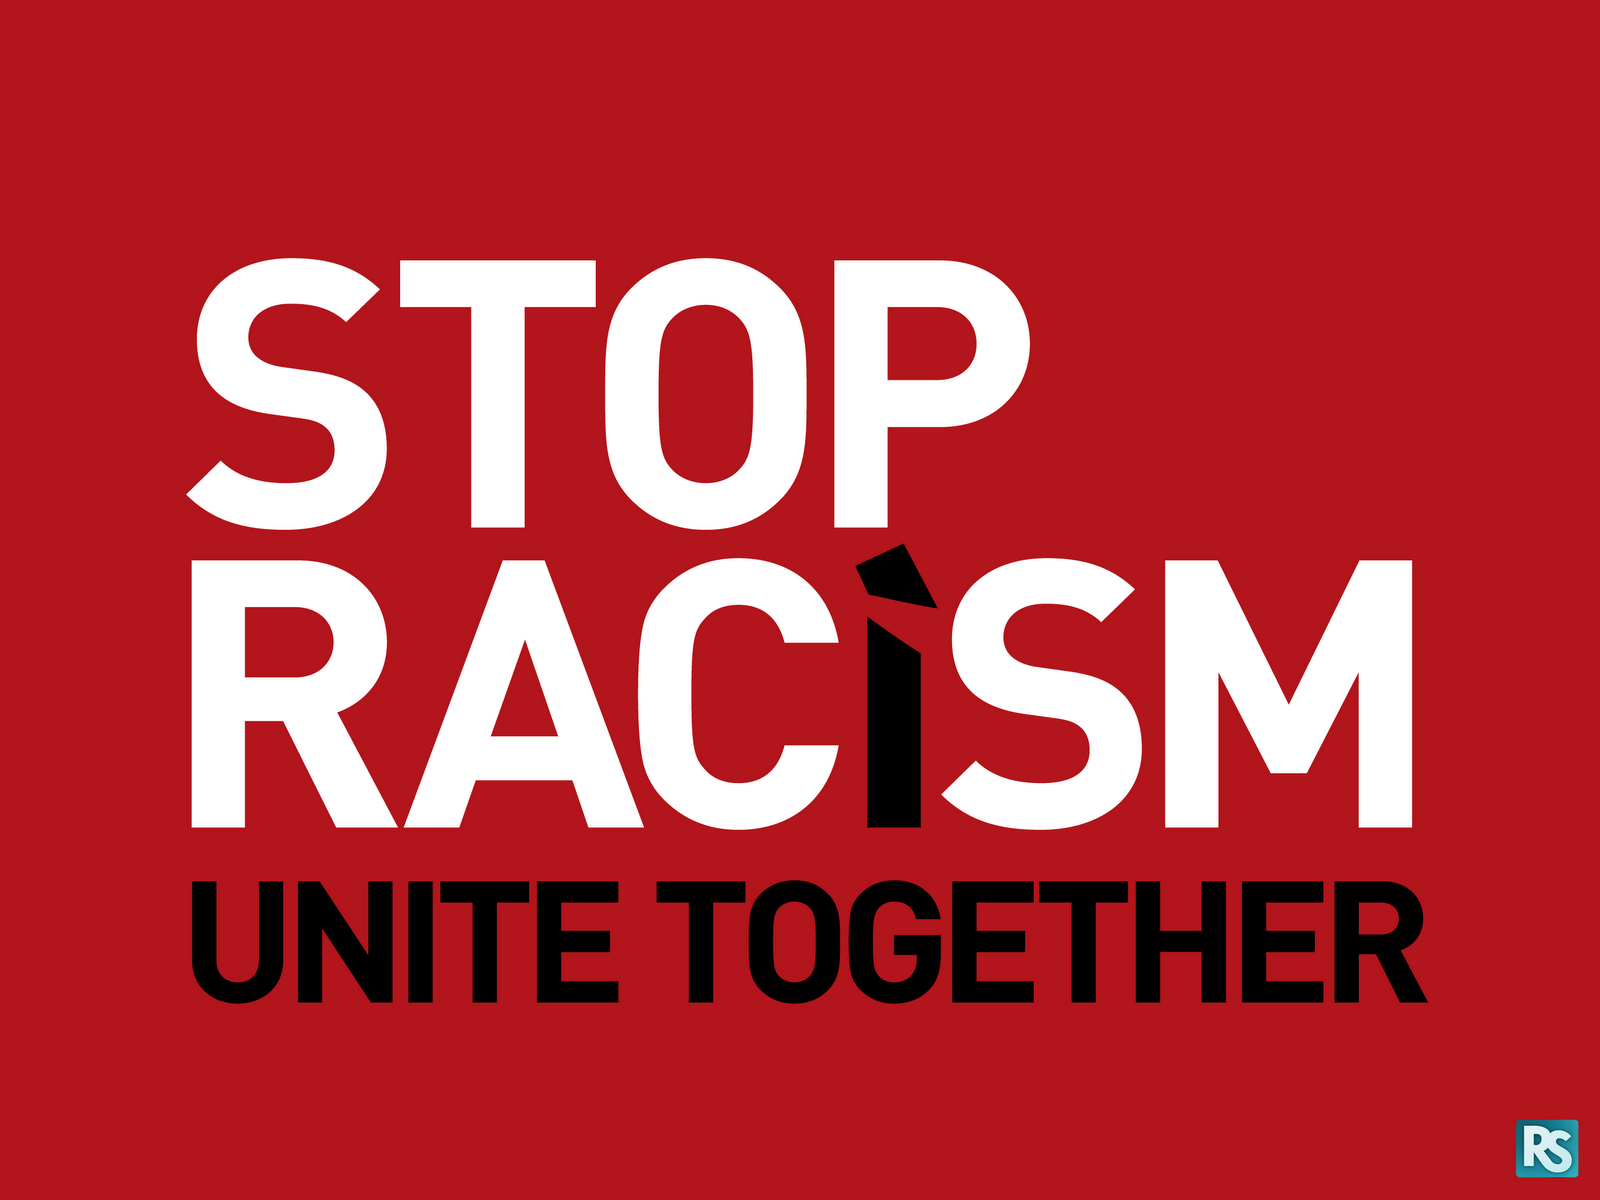 racism three different forms open racism violent racism 'racism is still strongly prevalent in today's society' (gudorf 3) the three different basic forms of racism, open racism, violent racism, and covert racism.